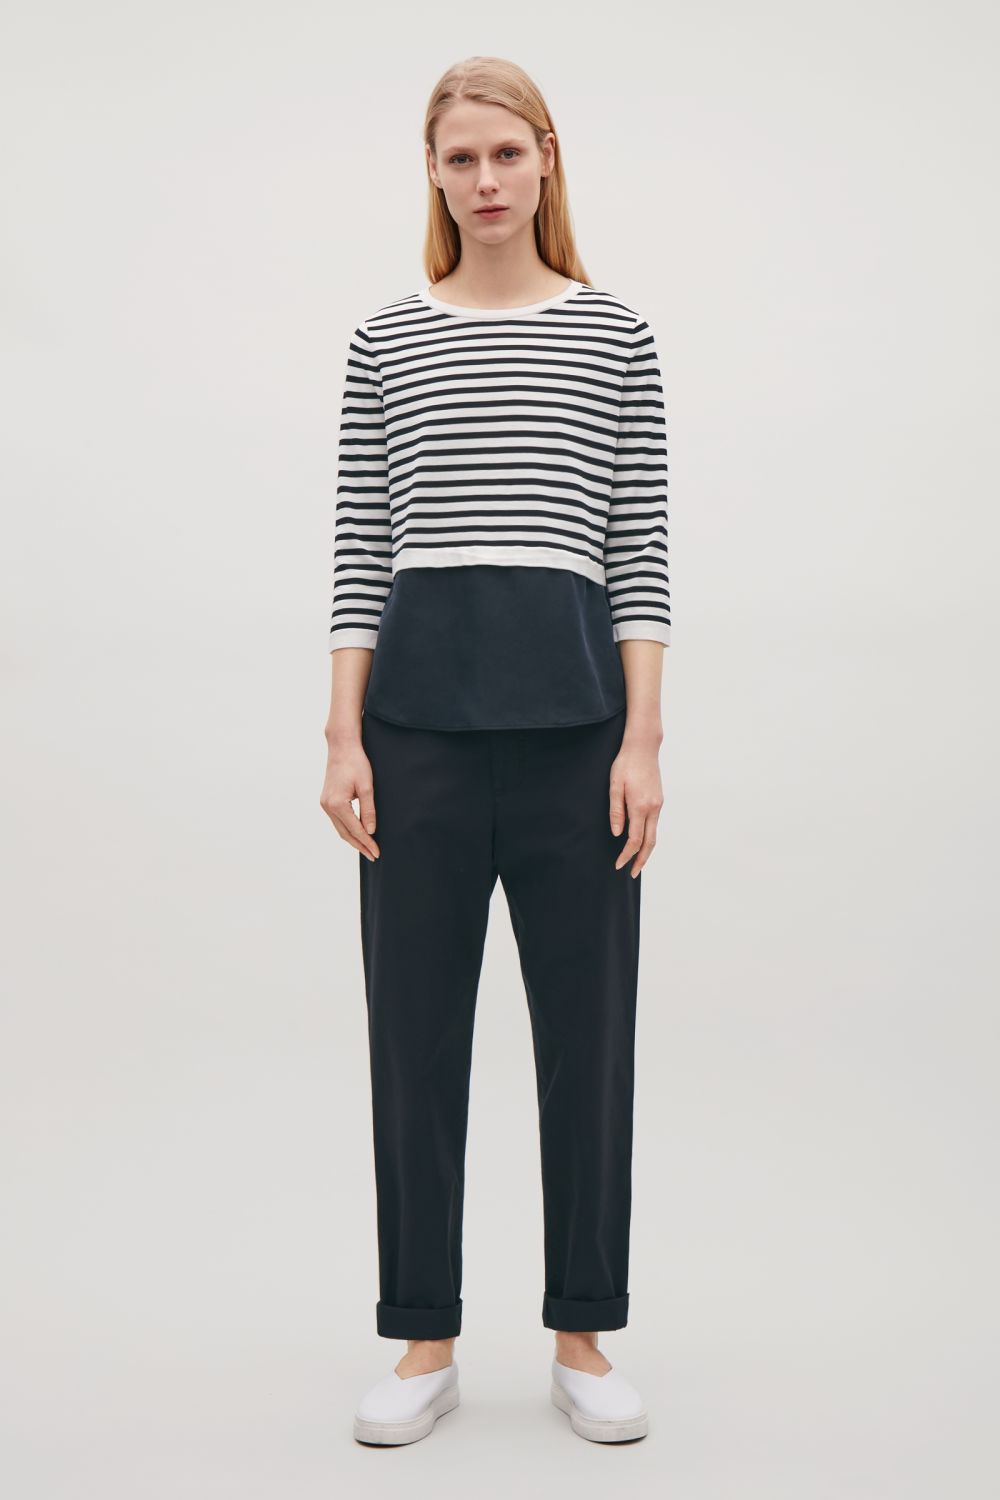 SILK-PANELLED KNIT TOP